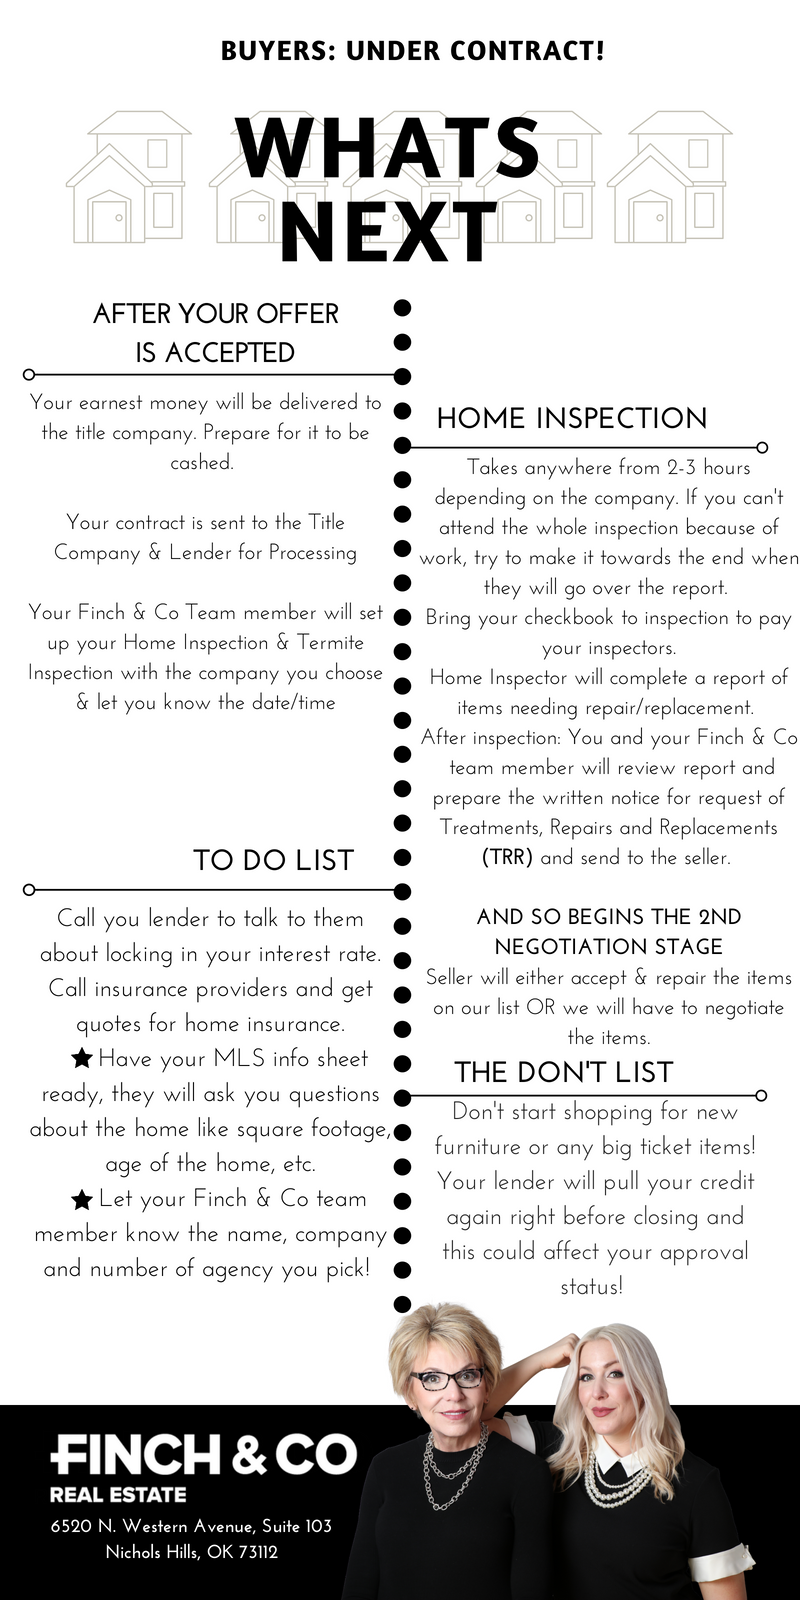 Copy of BUYERS UNDER CONTRACT- WHAT'S NEXT.png